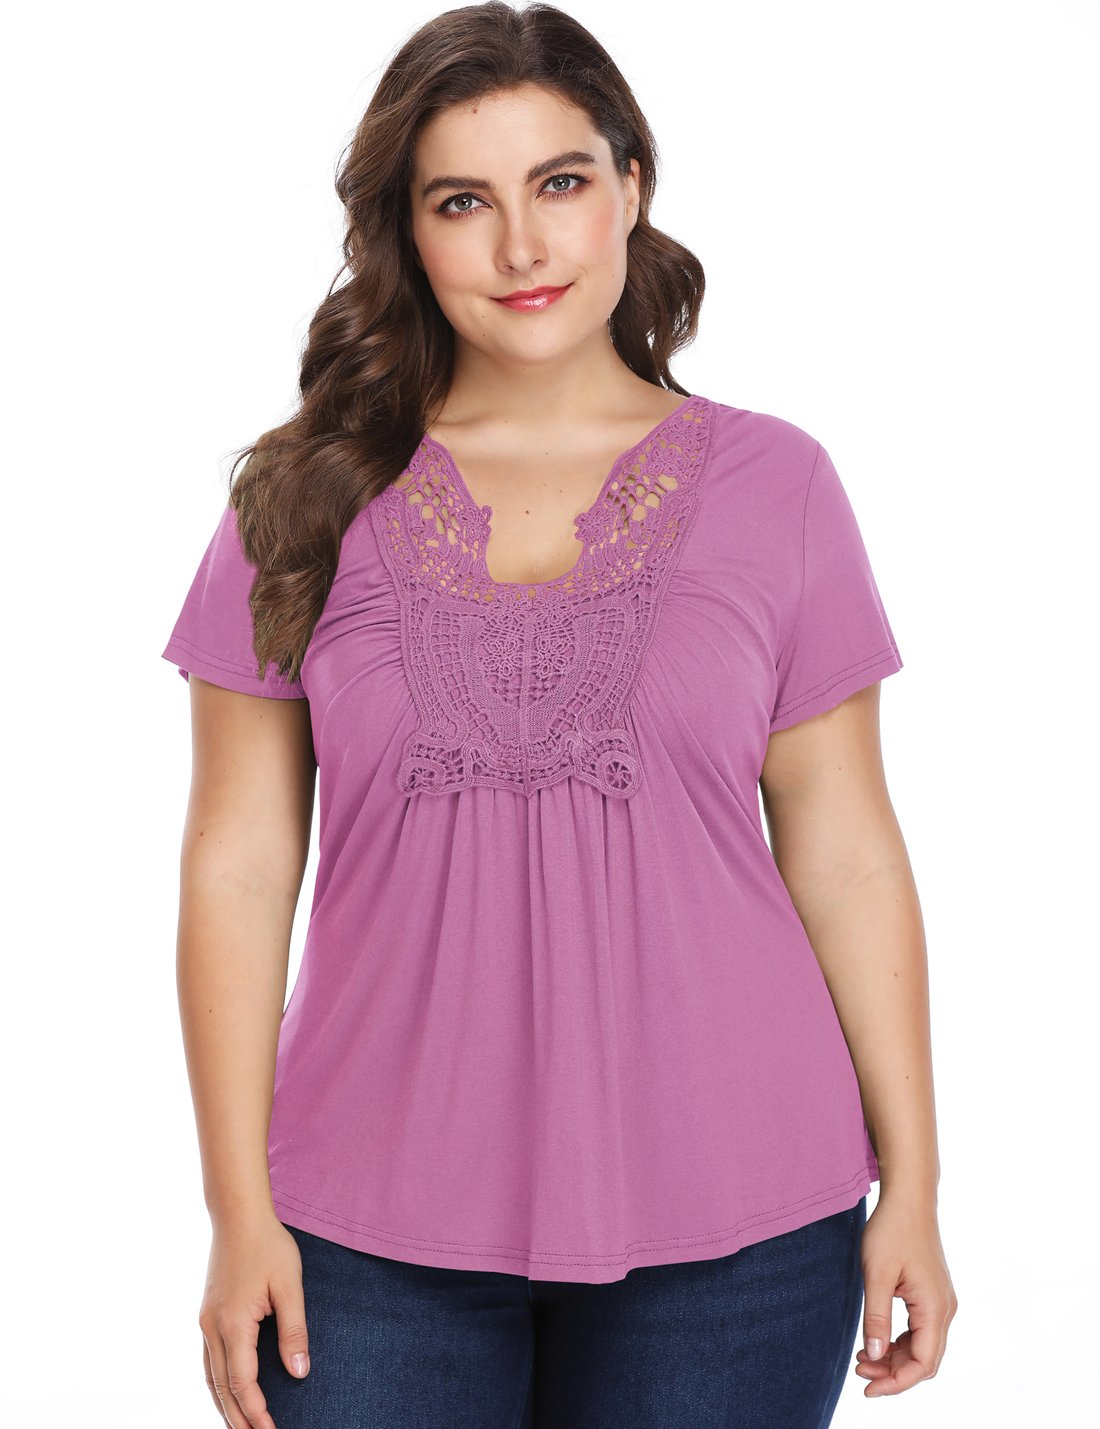 MISS MOLY Peplum Tops for Women Deep V-Neck Ruched Front Short Sleeve Ruffle Casual Blouse Peasant Shirt (XS~4XL) (2X-Large/US-20, Lilac(Plus Size))